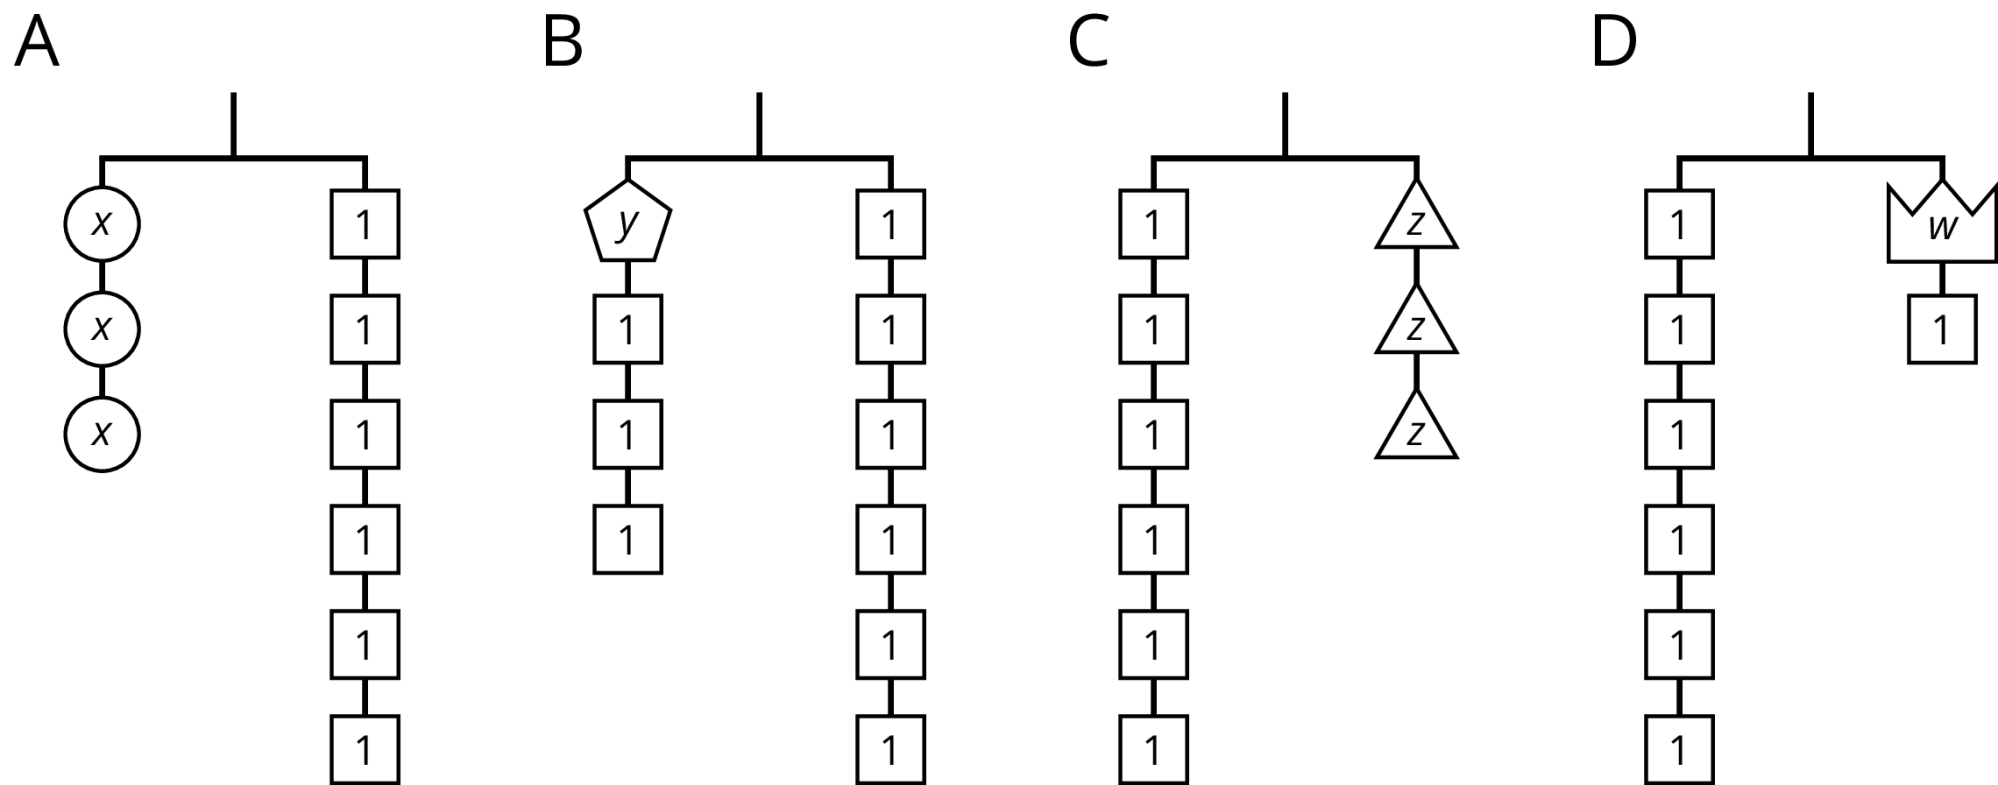 hight resolution of 3 2 match equations and hangers